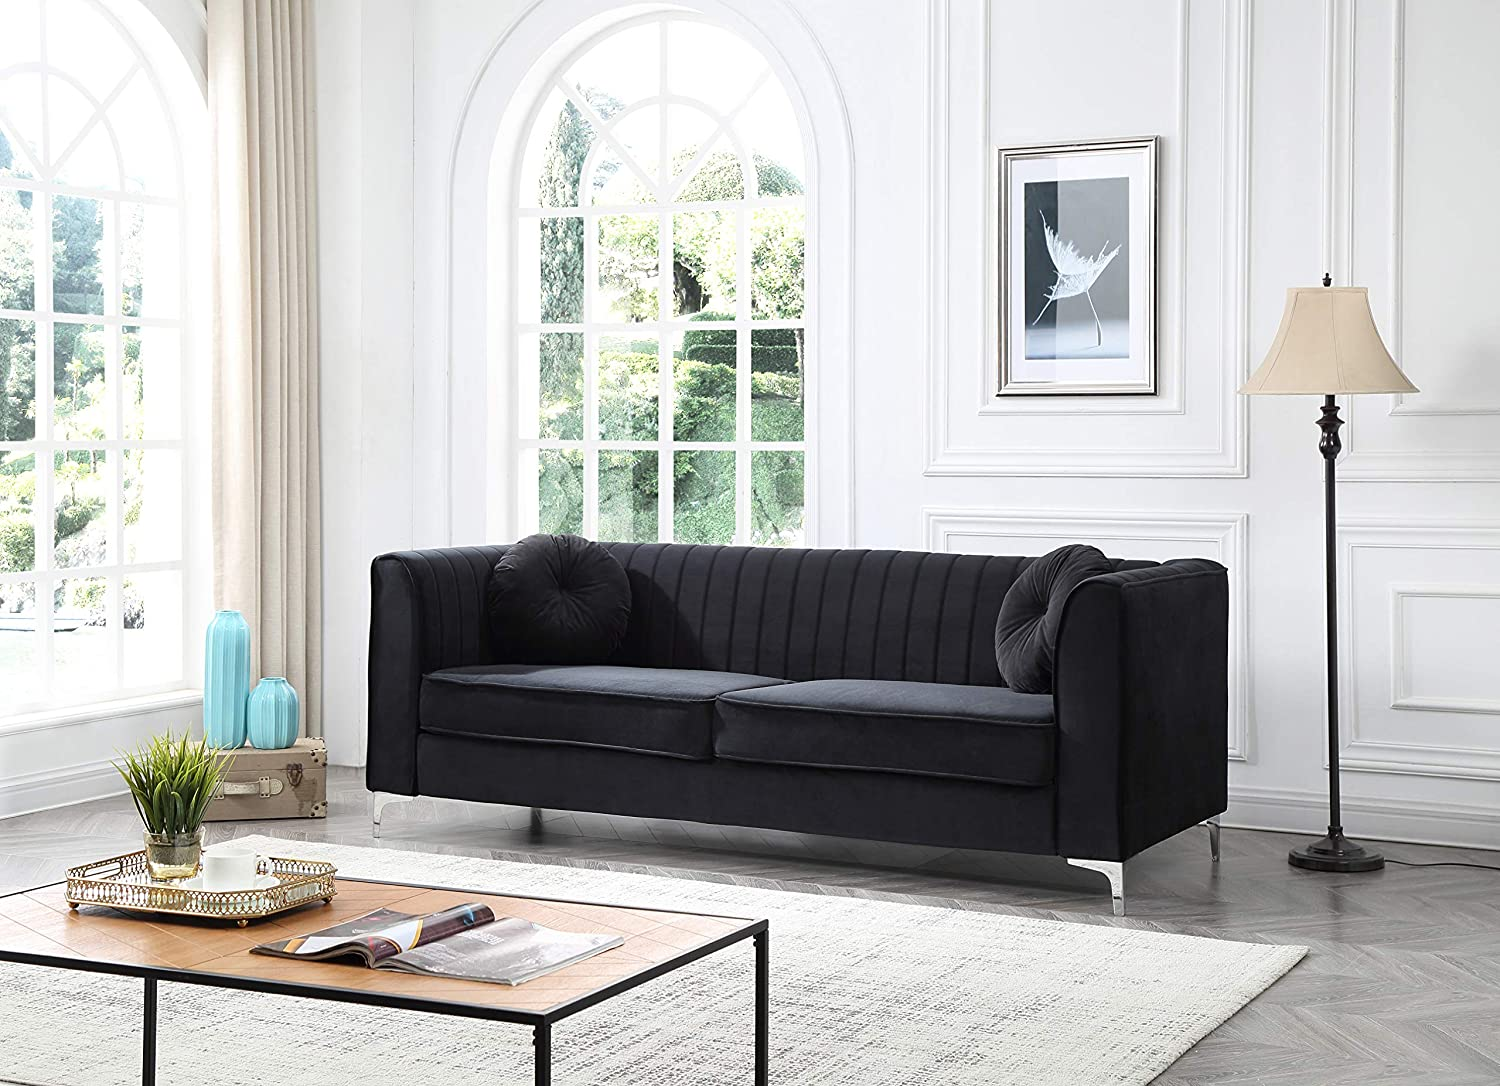 Glory Furniture Delray G793A-S Sofa, Black. Living Room Furniture, 32